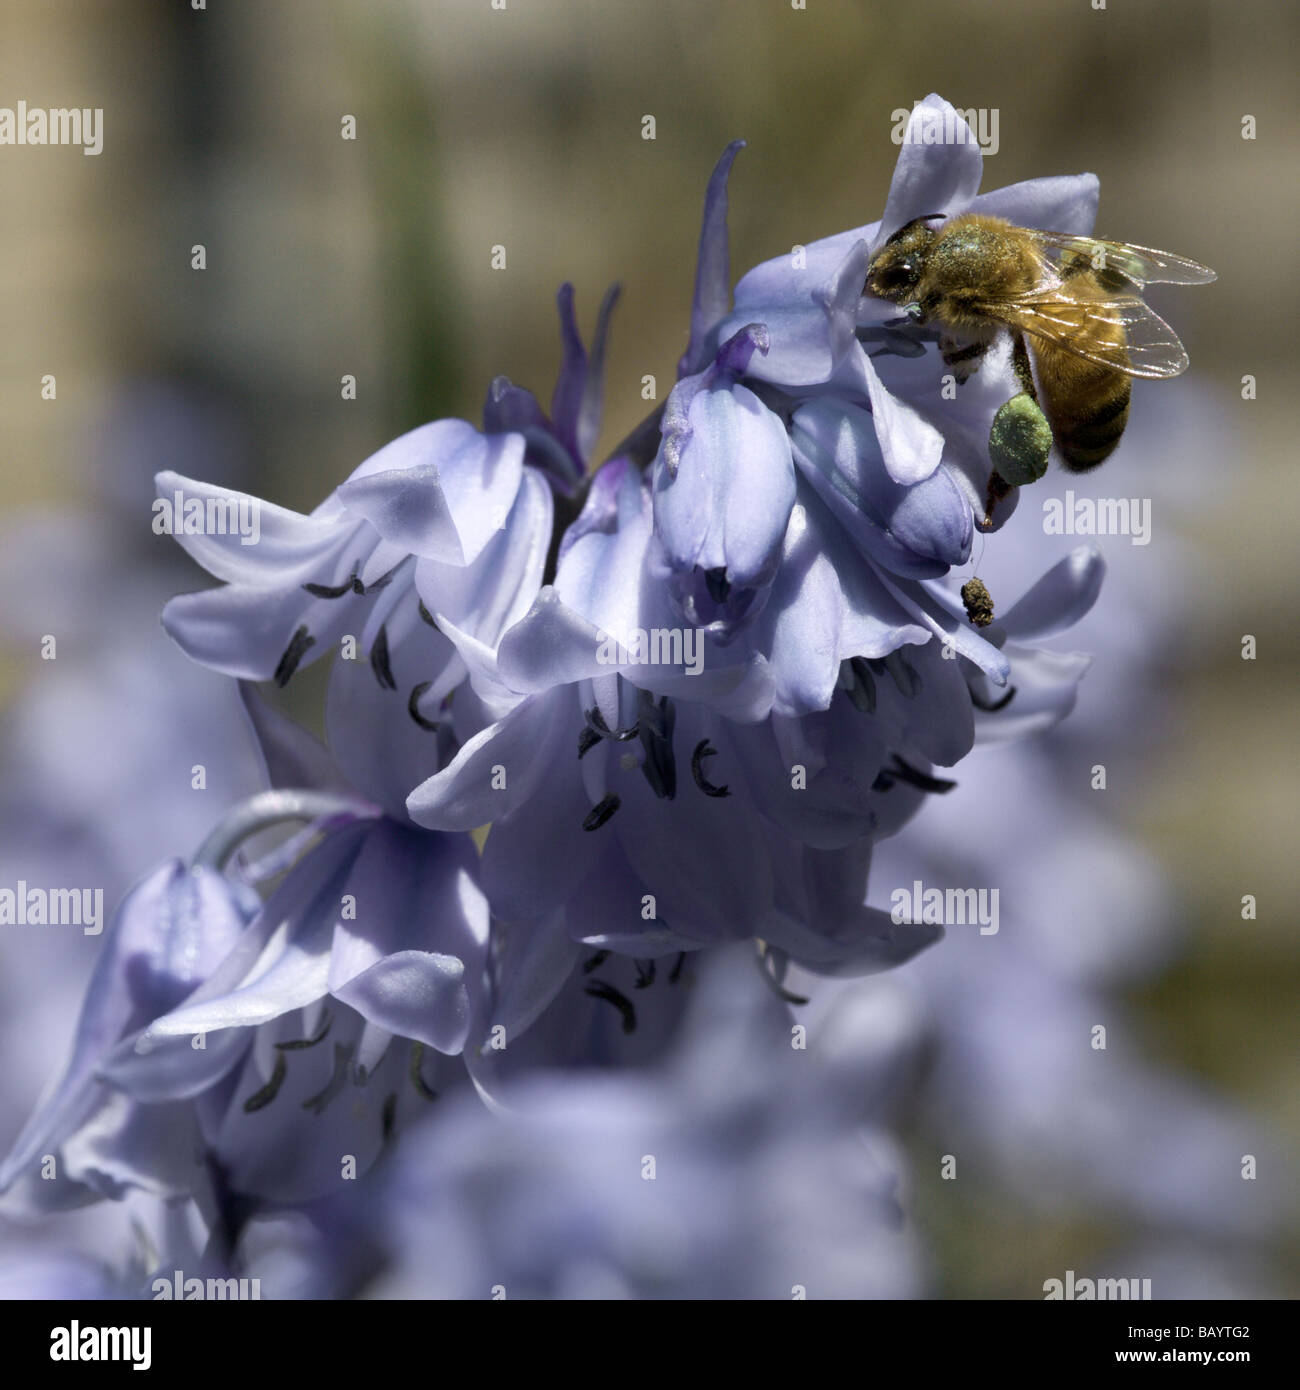 A honey bee collecting unusual green pollen from bluebells, A large quantity of green pollen is on its leg. - Stock Image